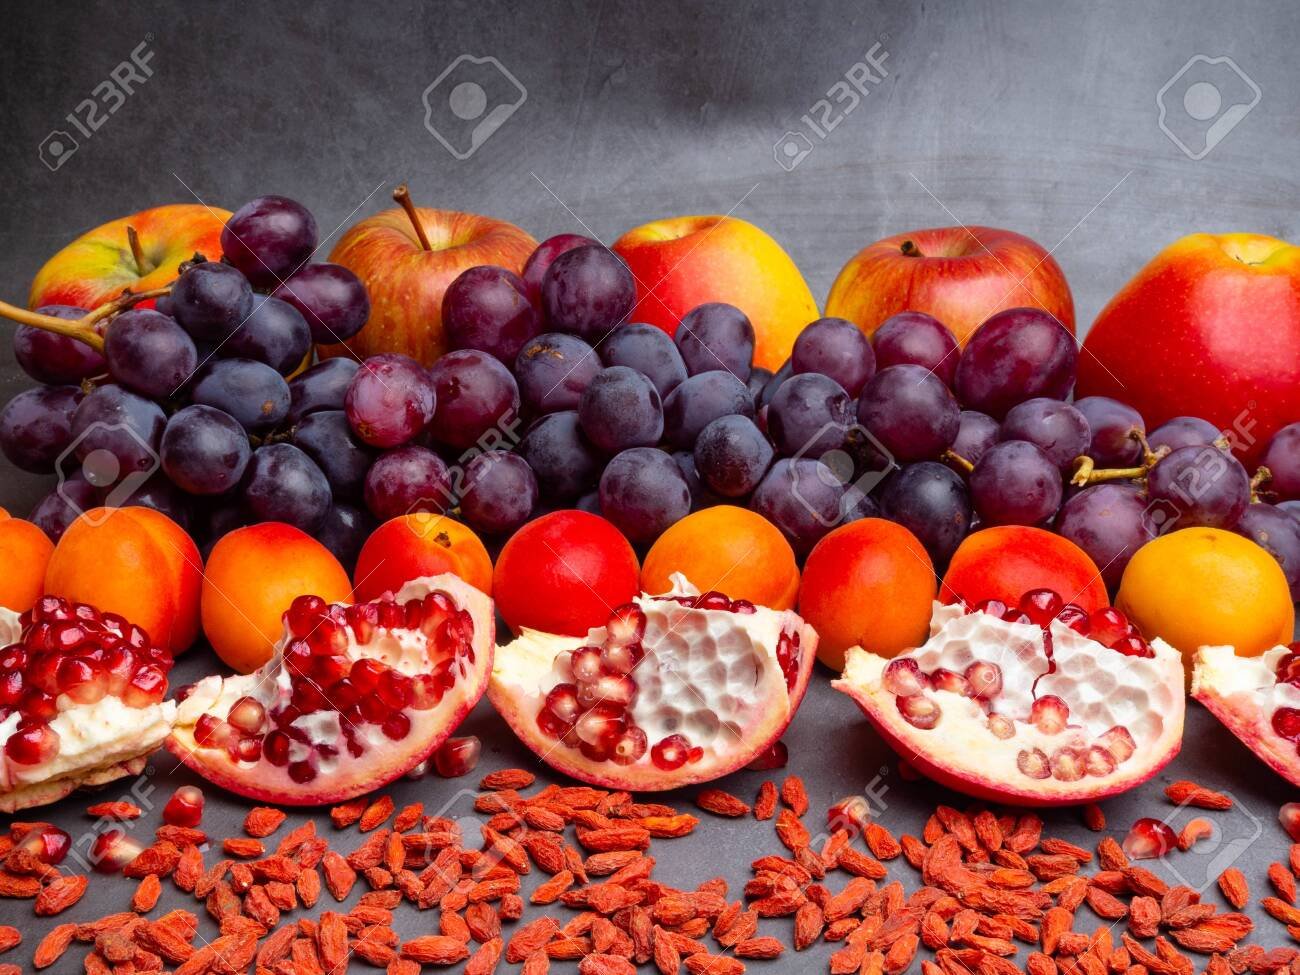 Mix Of Fresh Fruits And Berries Rich With Resveratrol Raw Food Stock Photo Picture And Royalty Free Image Image 123707945